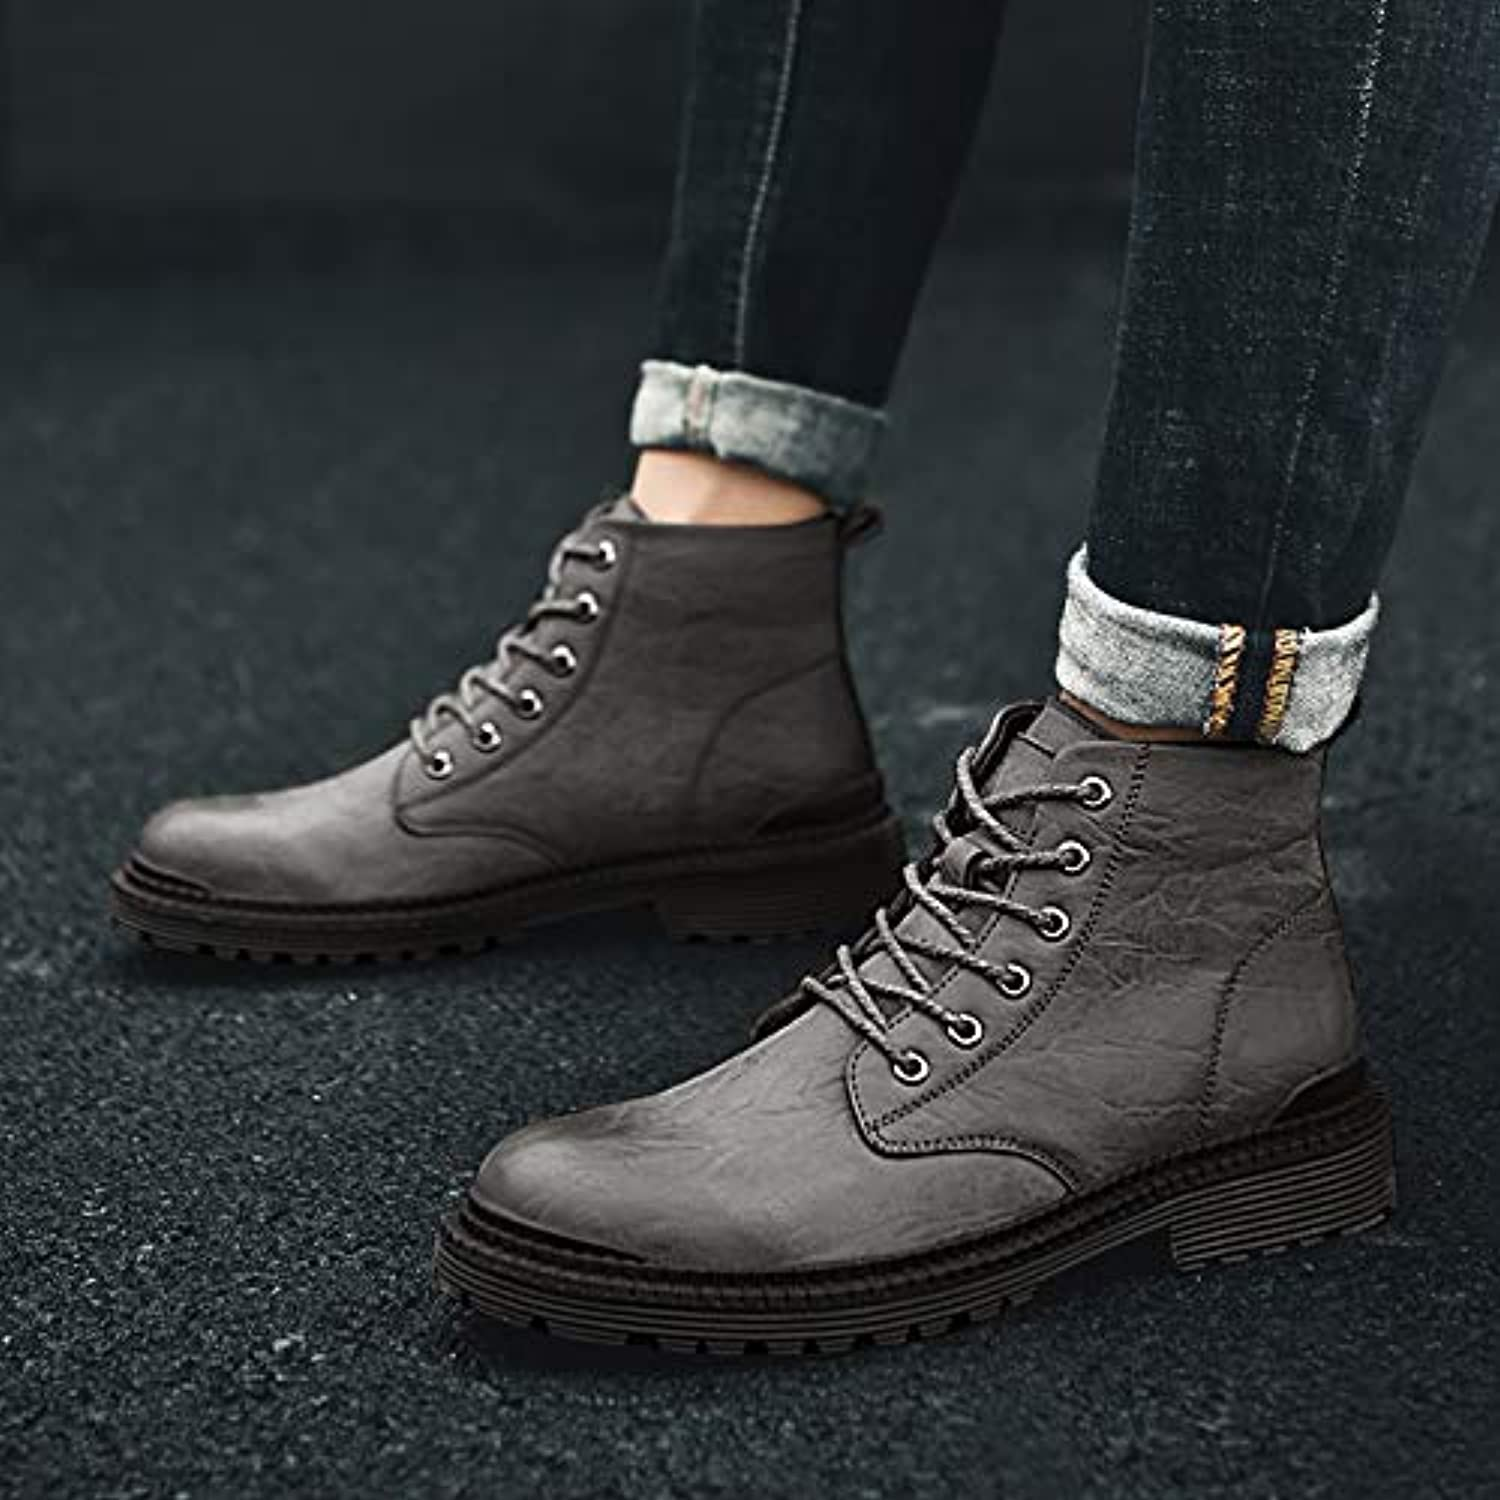 LOVDRAM Boots Men's Winter Men'S shoes Martin Boots Men'S Casual Tooling Boots Boots In The Desert To Help Military Boots Pu High Boots